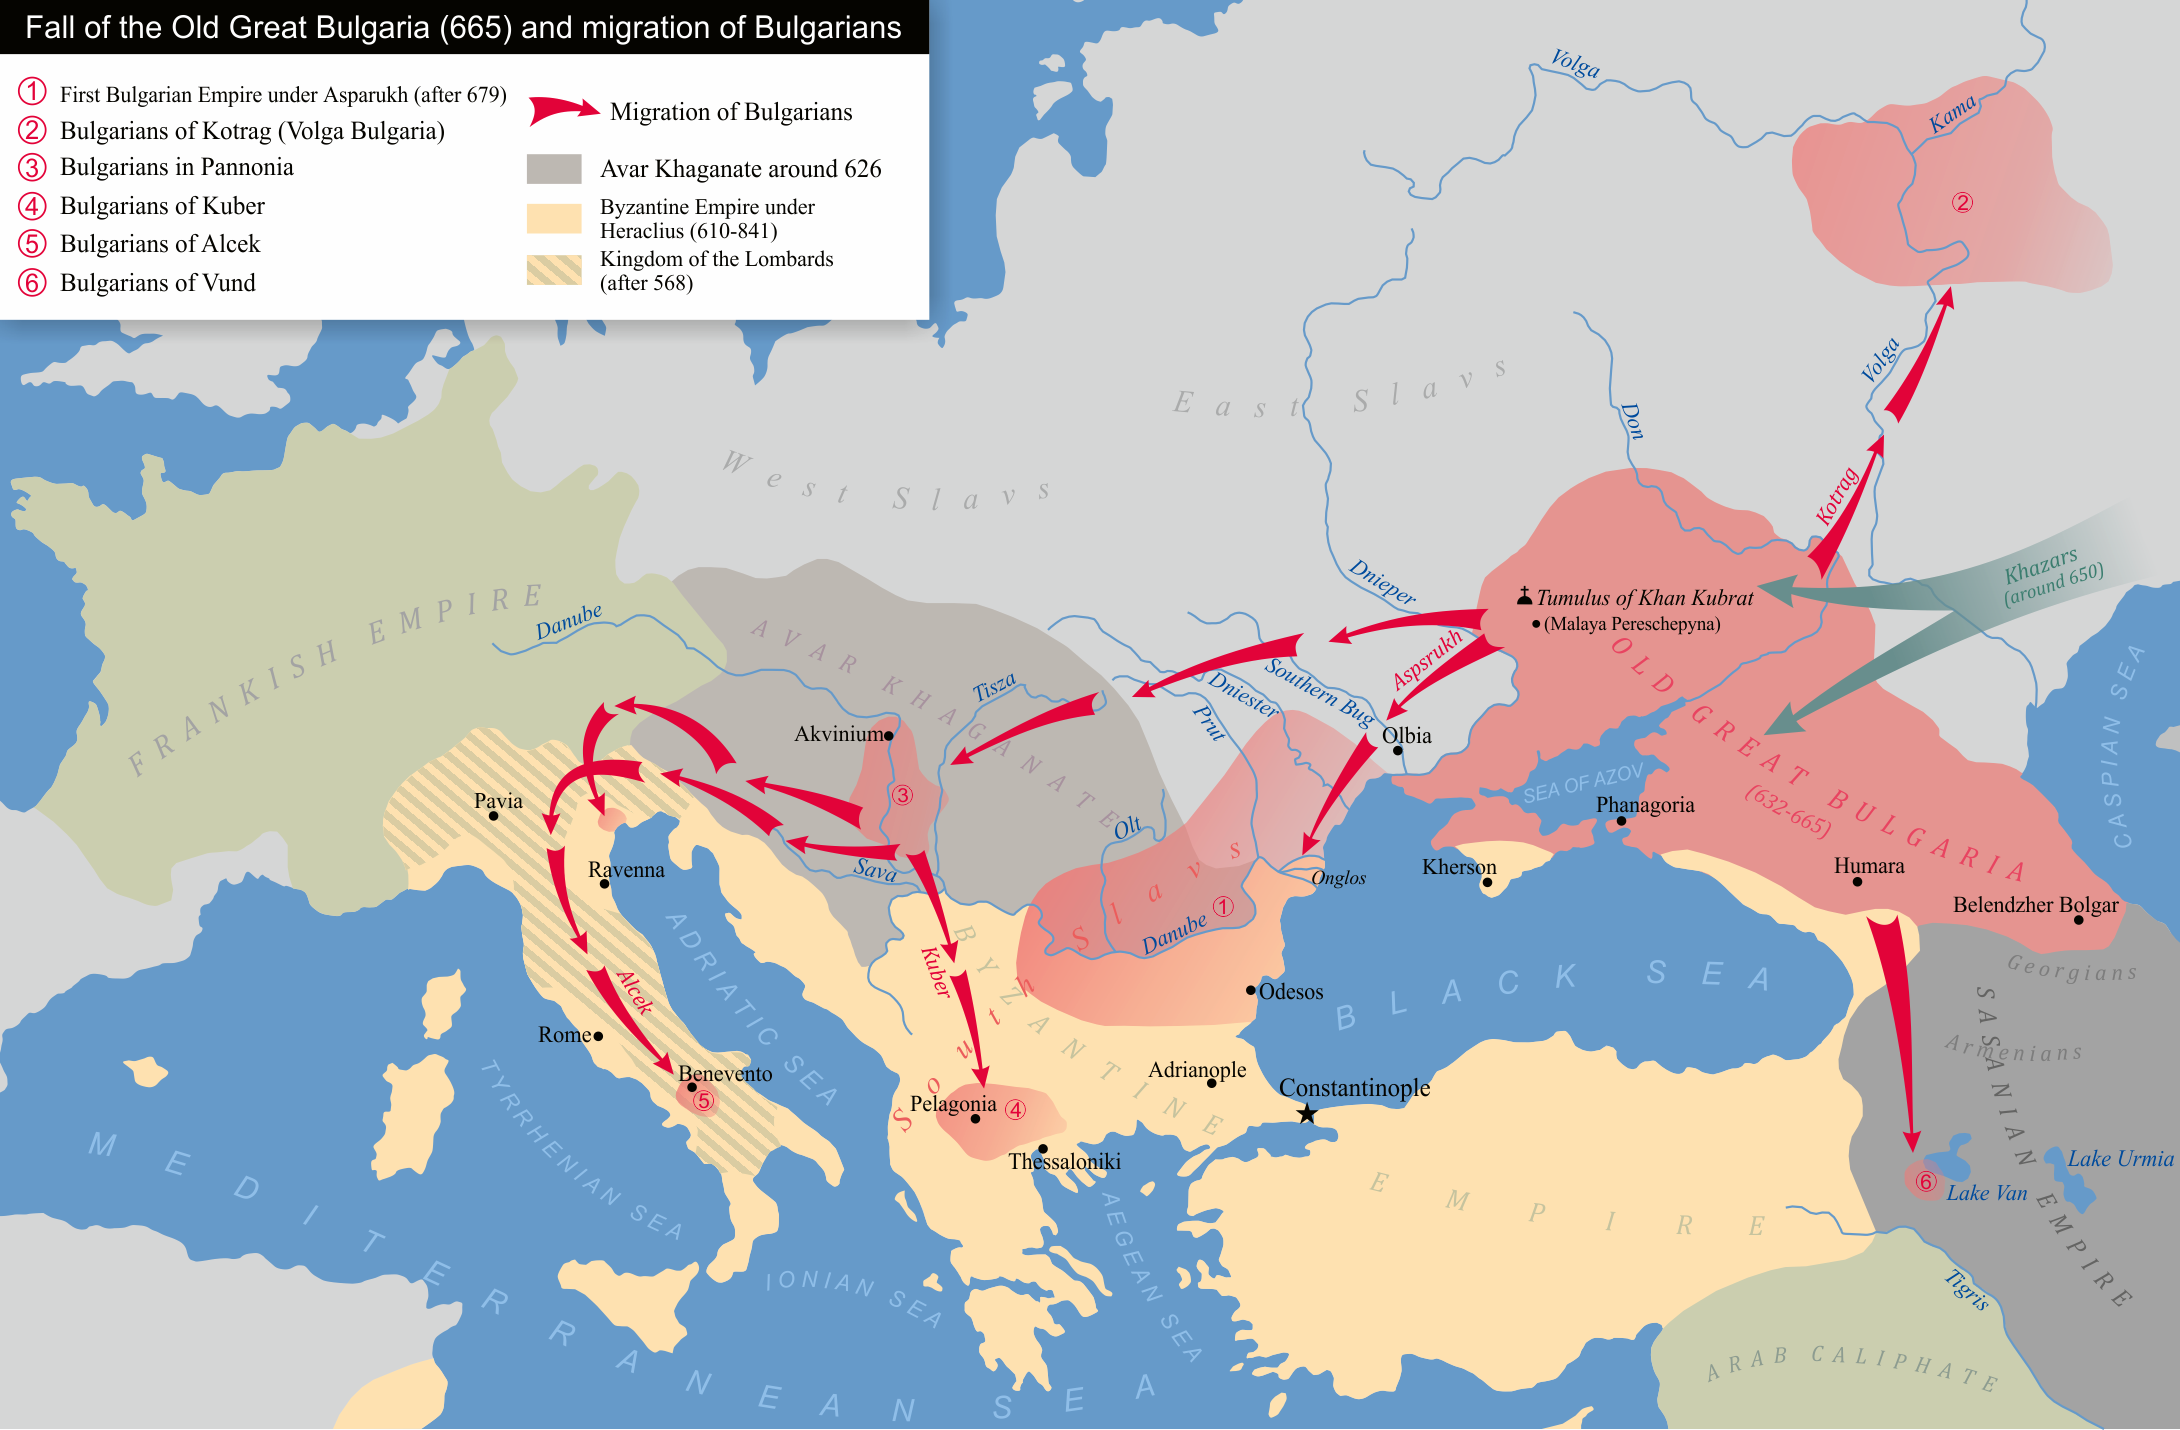 old_great_bulgaria_and_migration_of_bulgarians.png